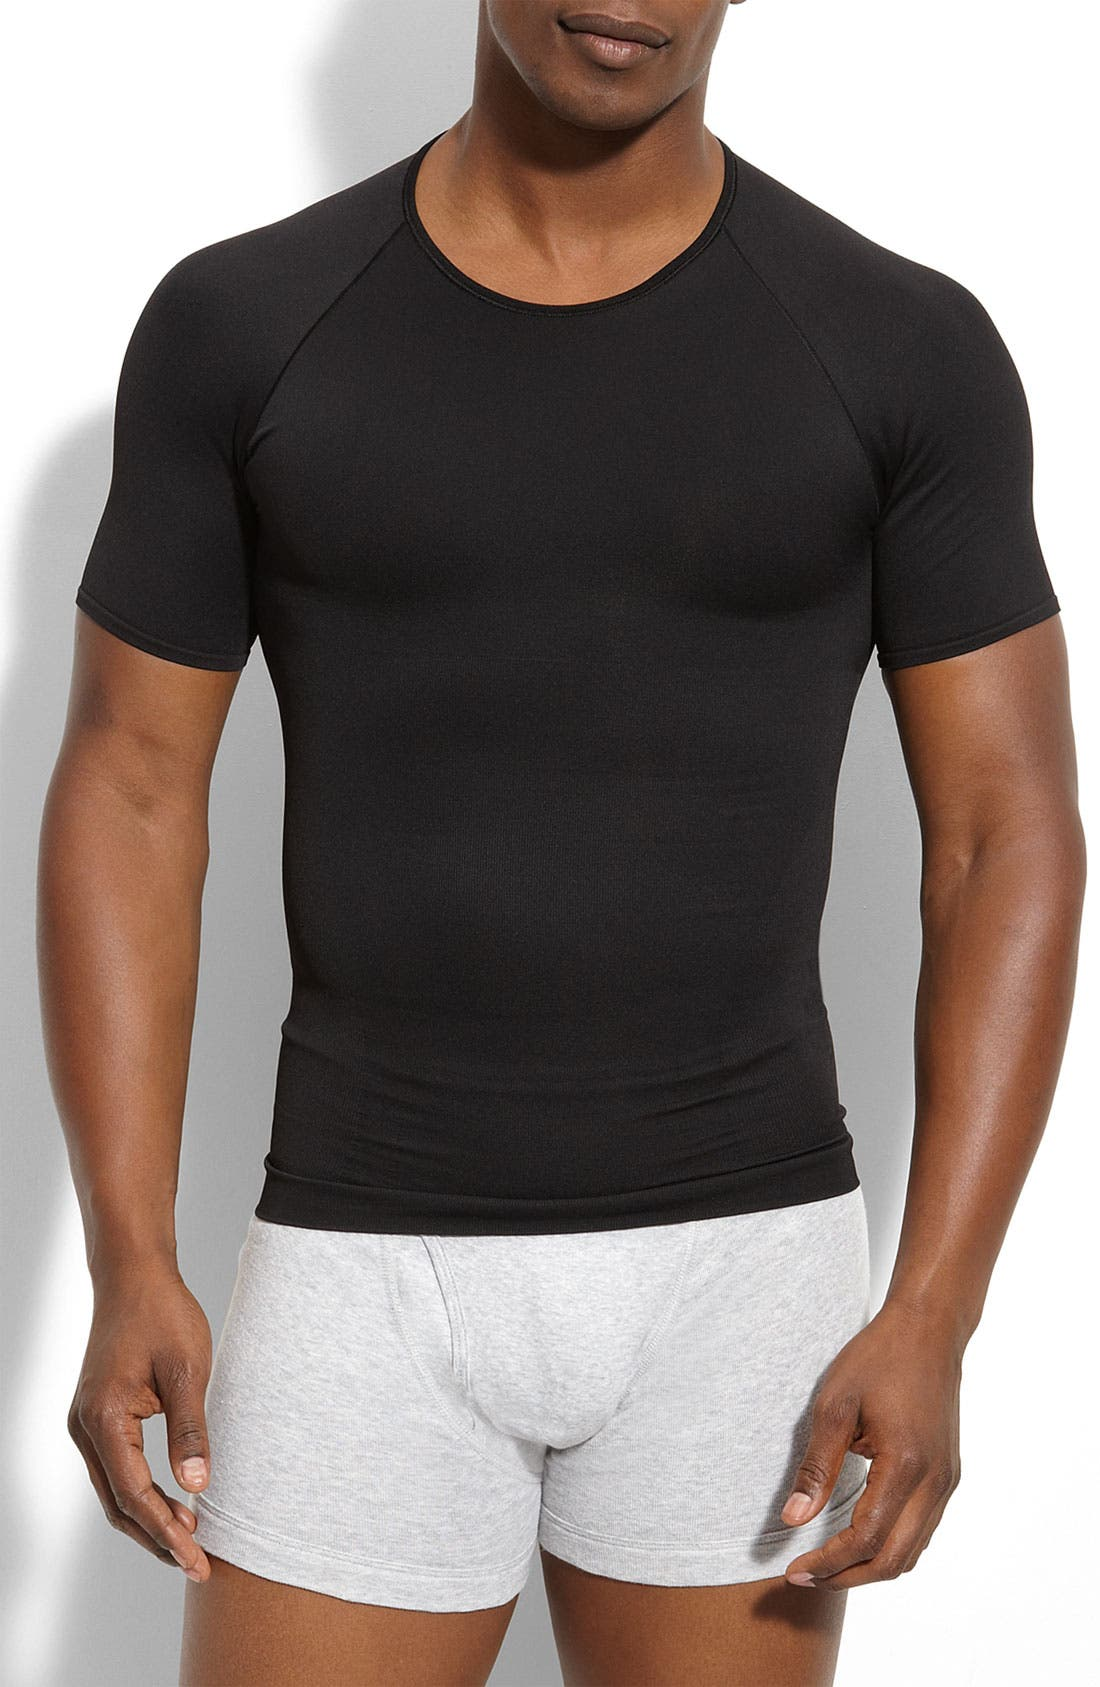 Alternate Image 1 Selected - SPANX® 'Zoned Performance' Compression Crewneck T-Shirt